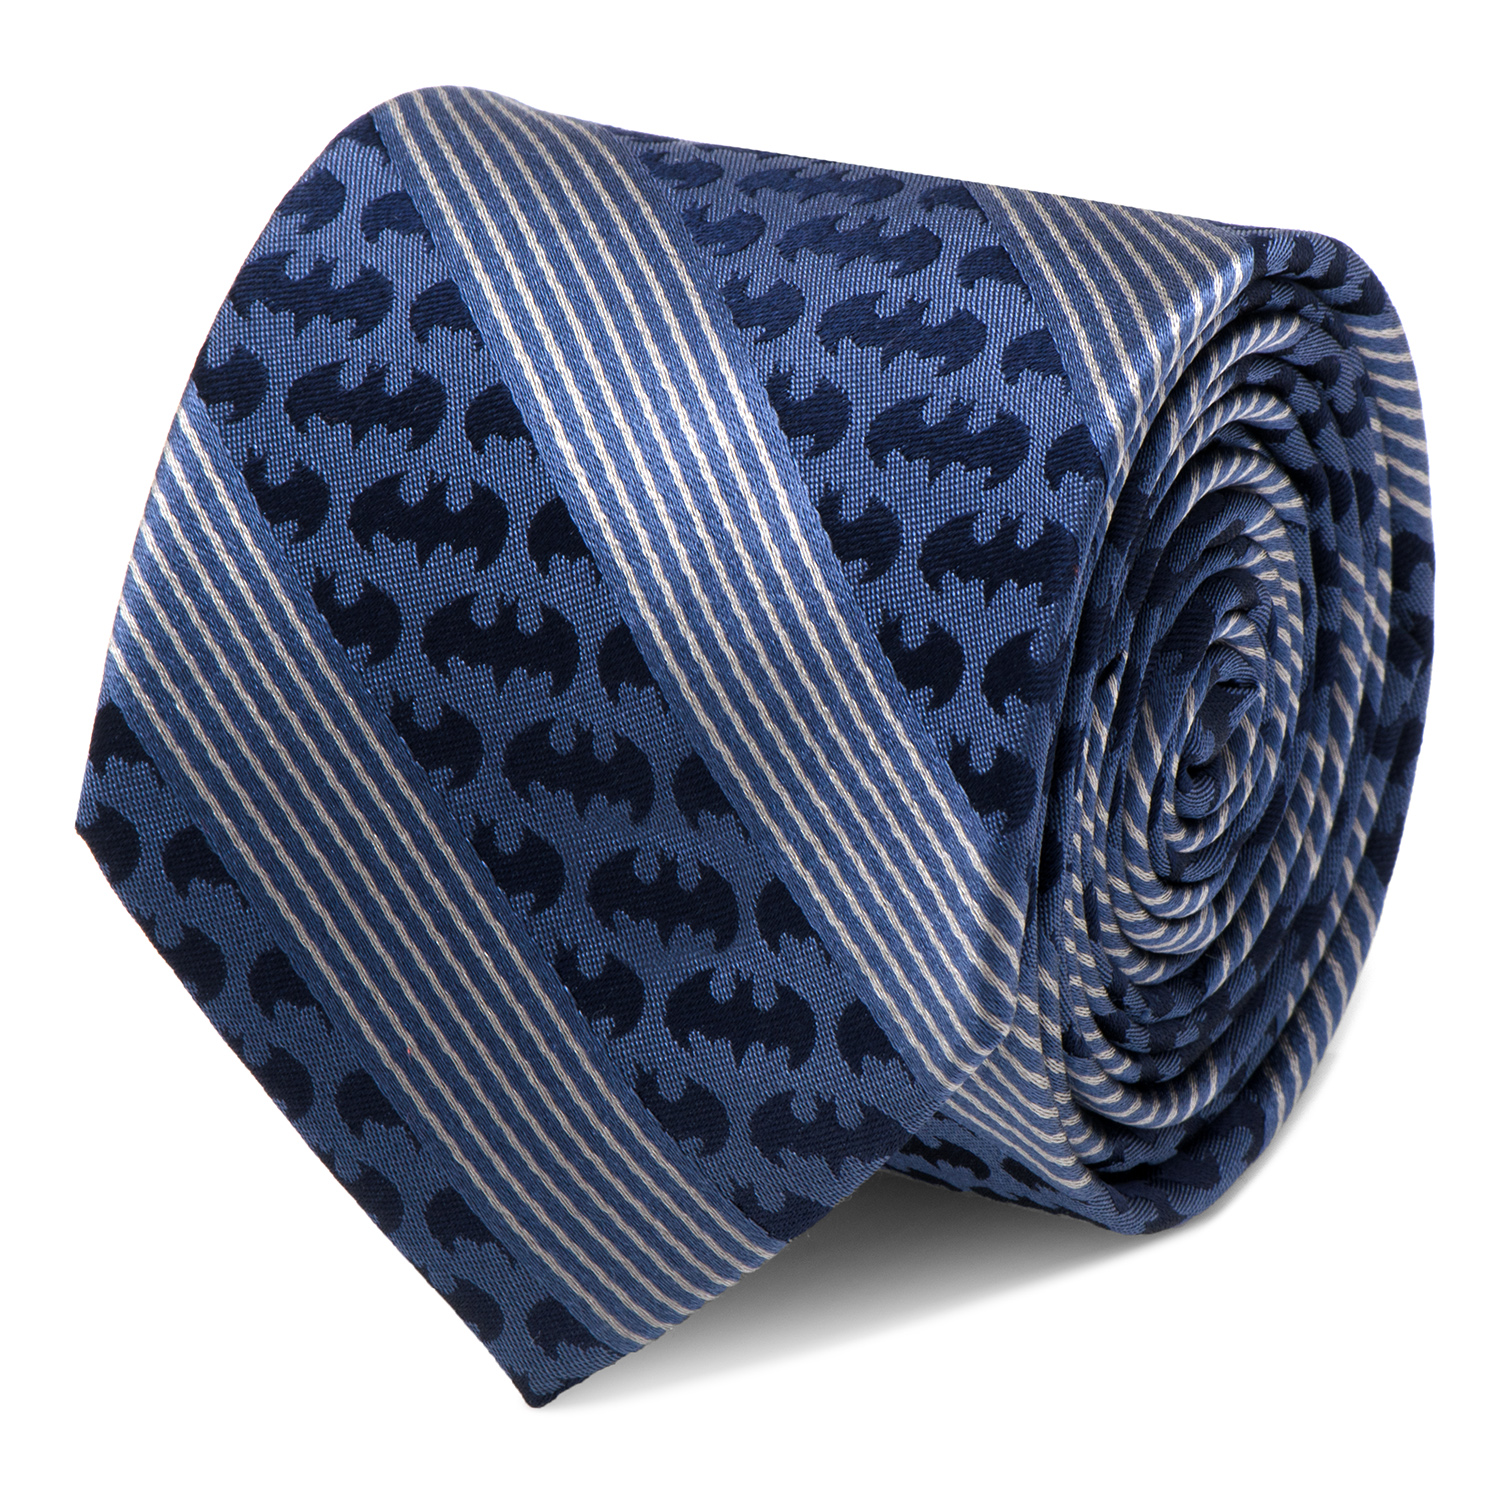 CUFFLINKS INC Mens Batman Pinstripe Navy Tie (Navy) - Modern Jewelry Accessory